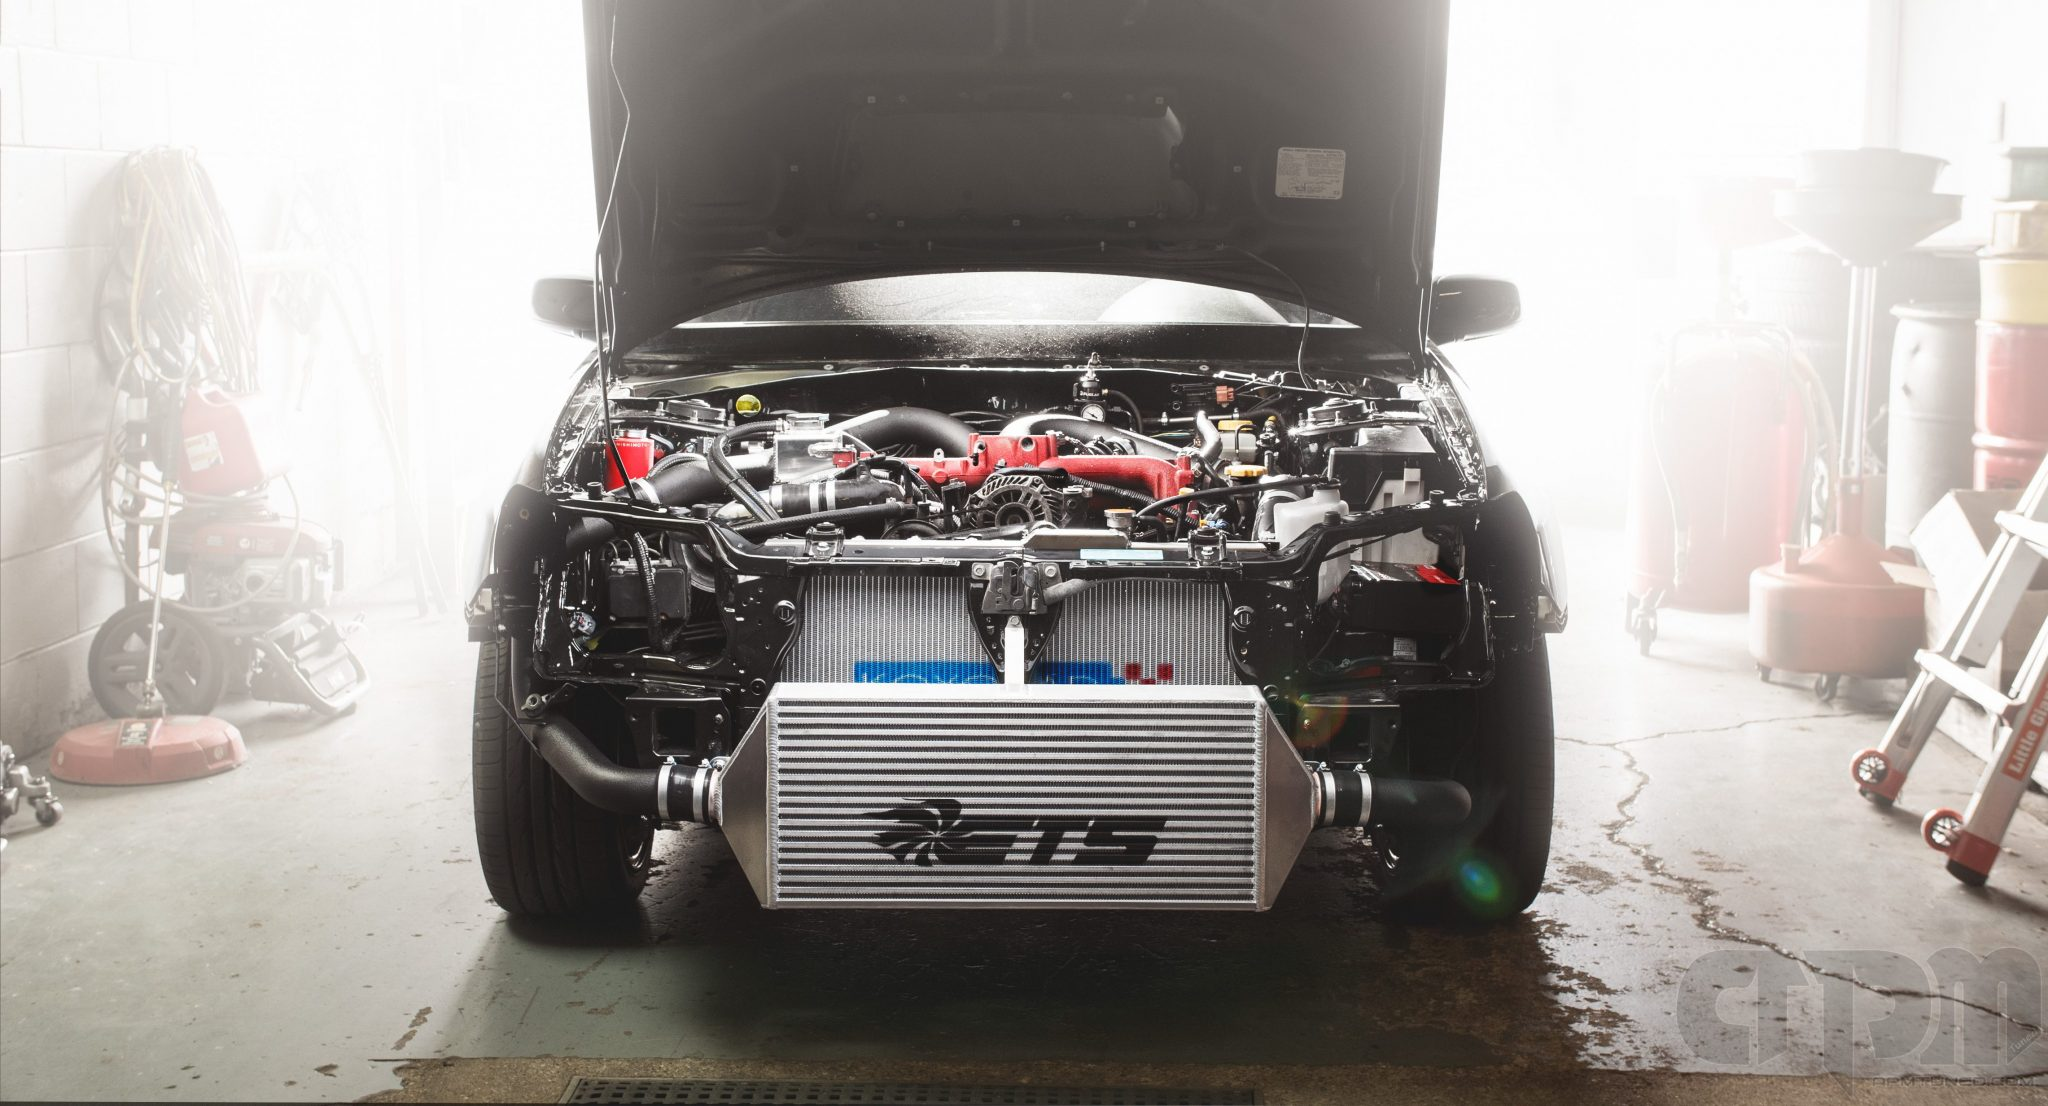 Front shot of Black STi with ETS intercooler and custom piping against backlight